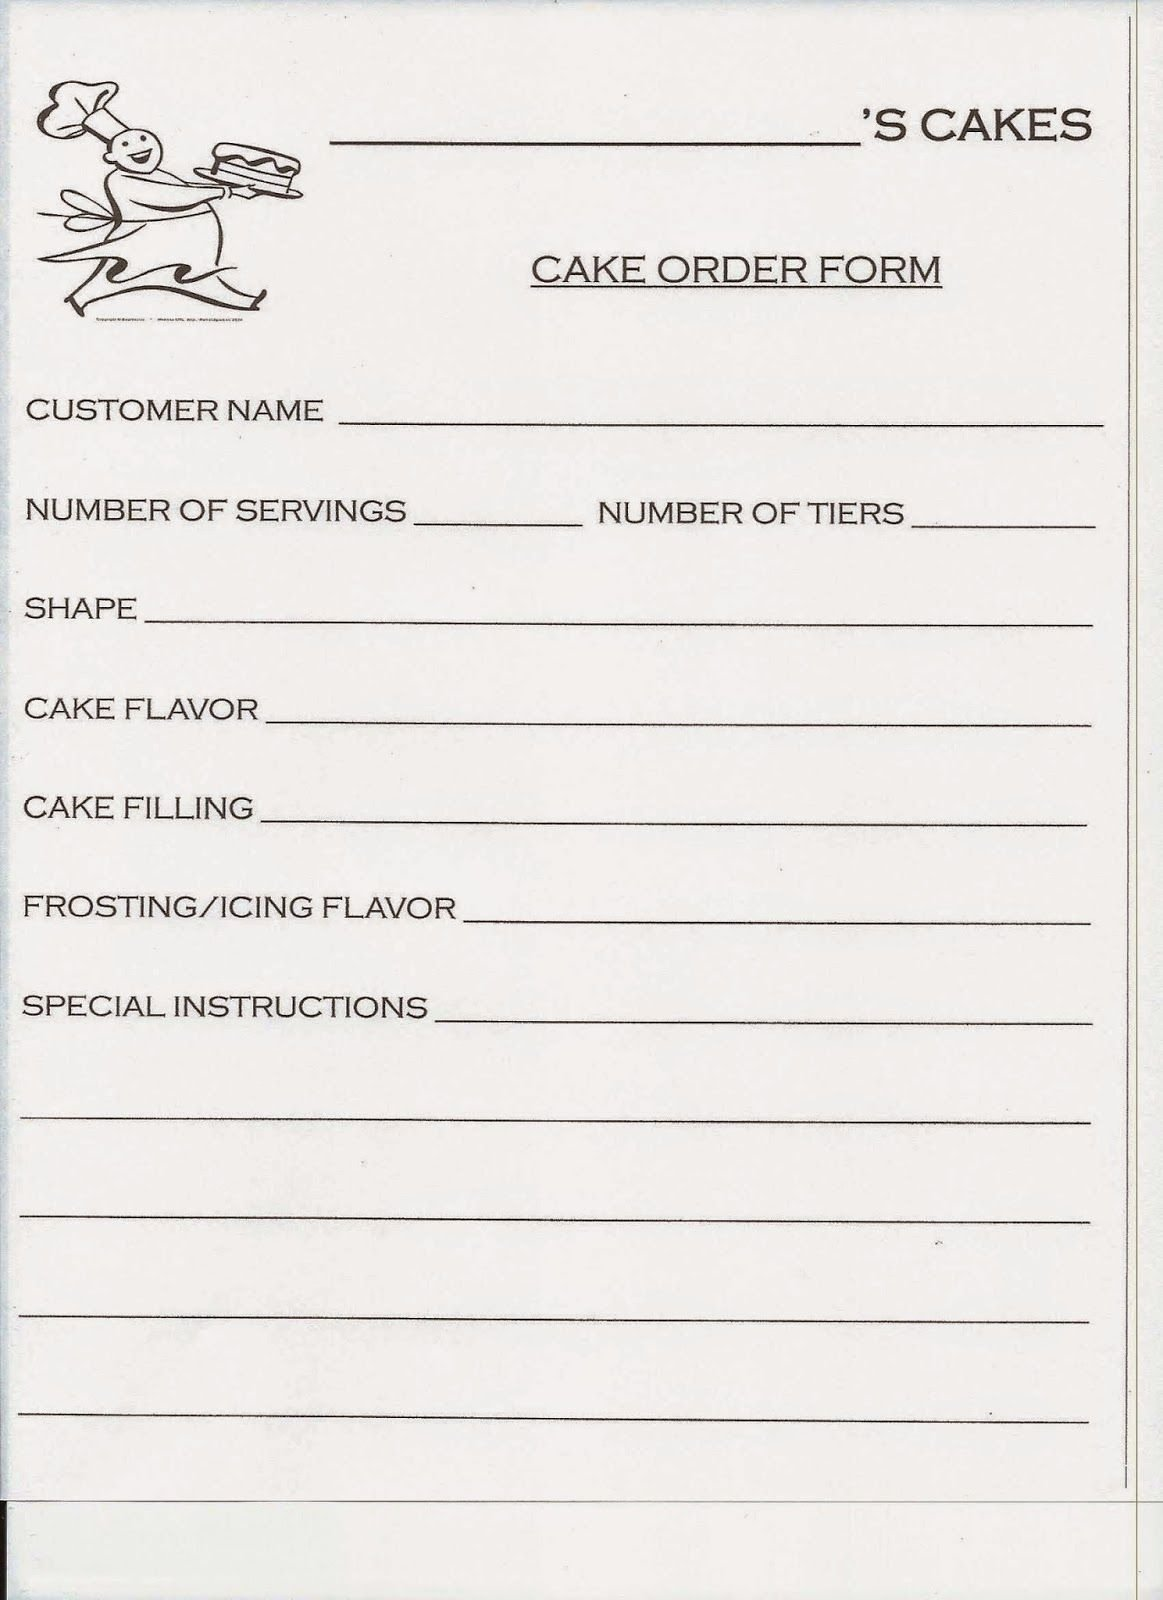 Cake order forms Printable Luxury Spark and All Jake Bakes Cakes Cake order form